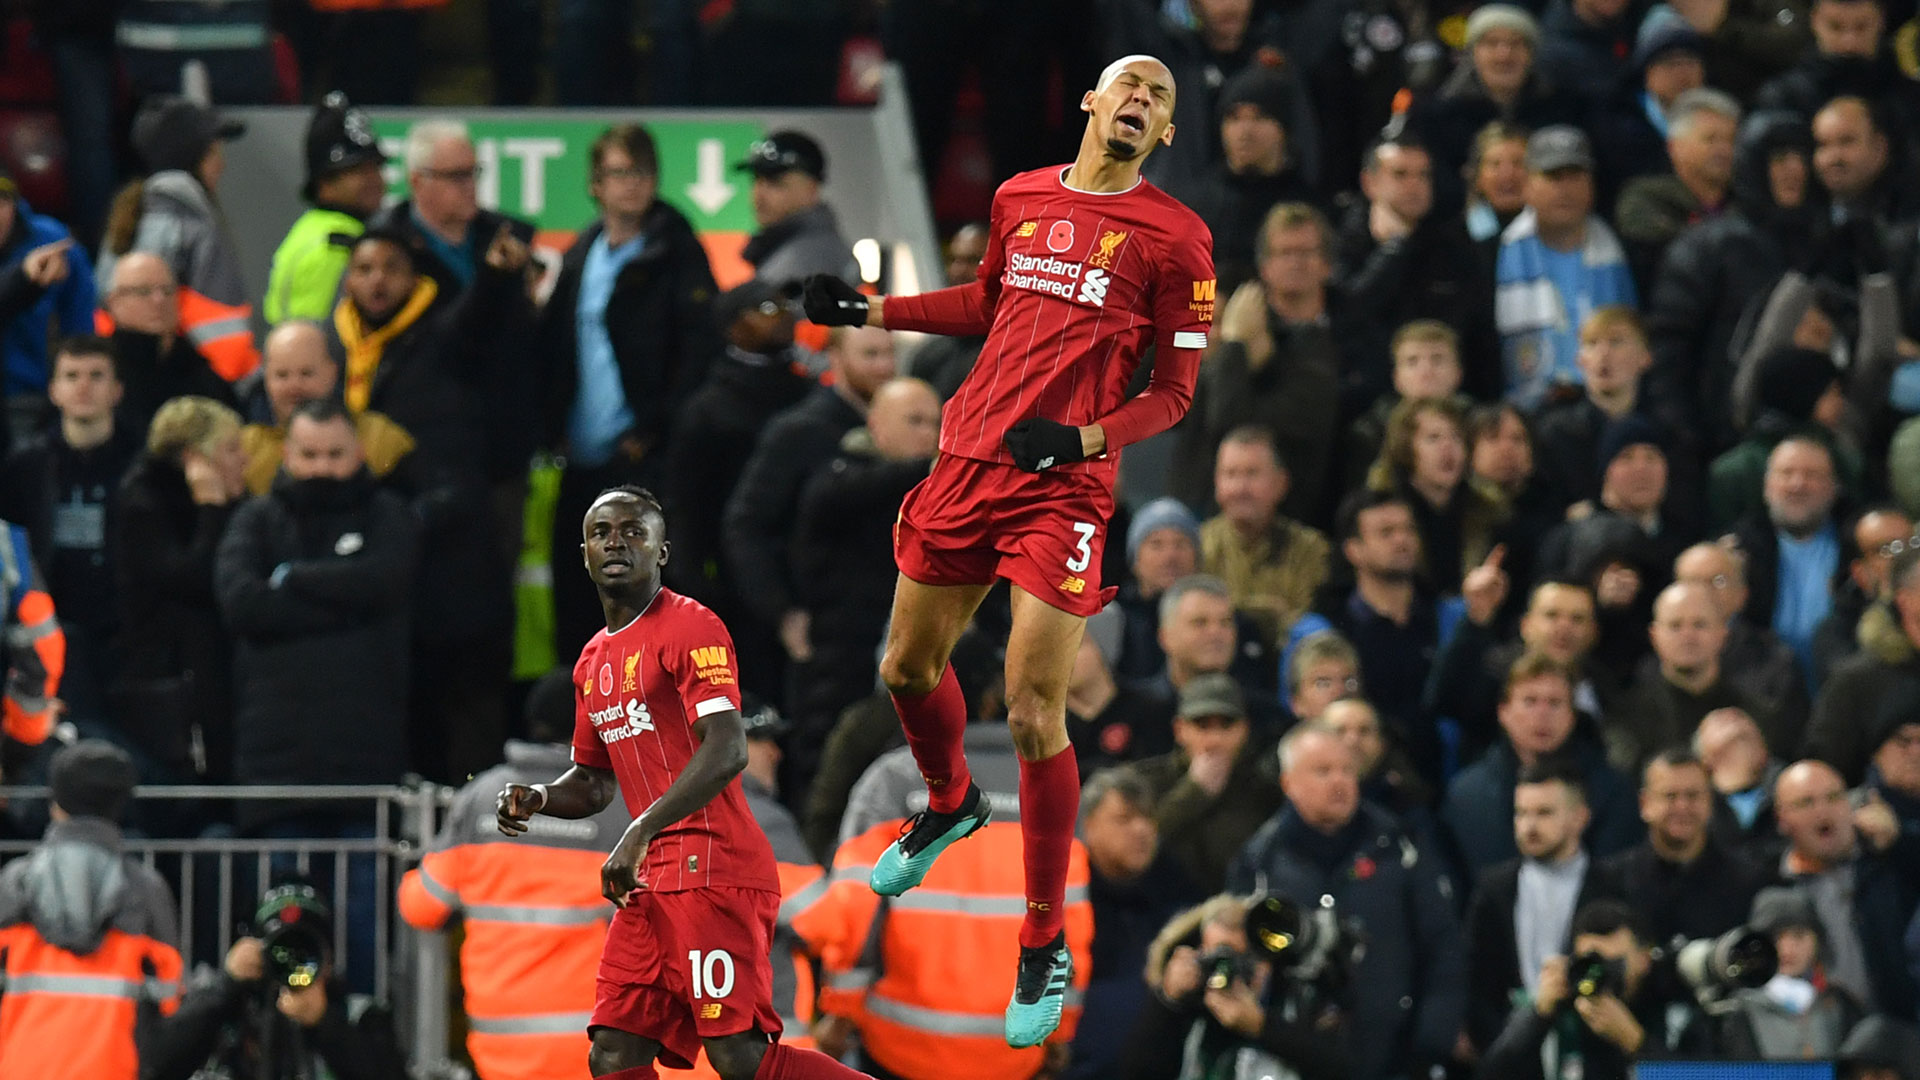 Fabinho FC Liverpool Manchester City Premier League 10112019